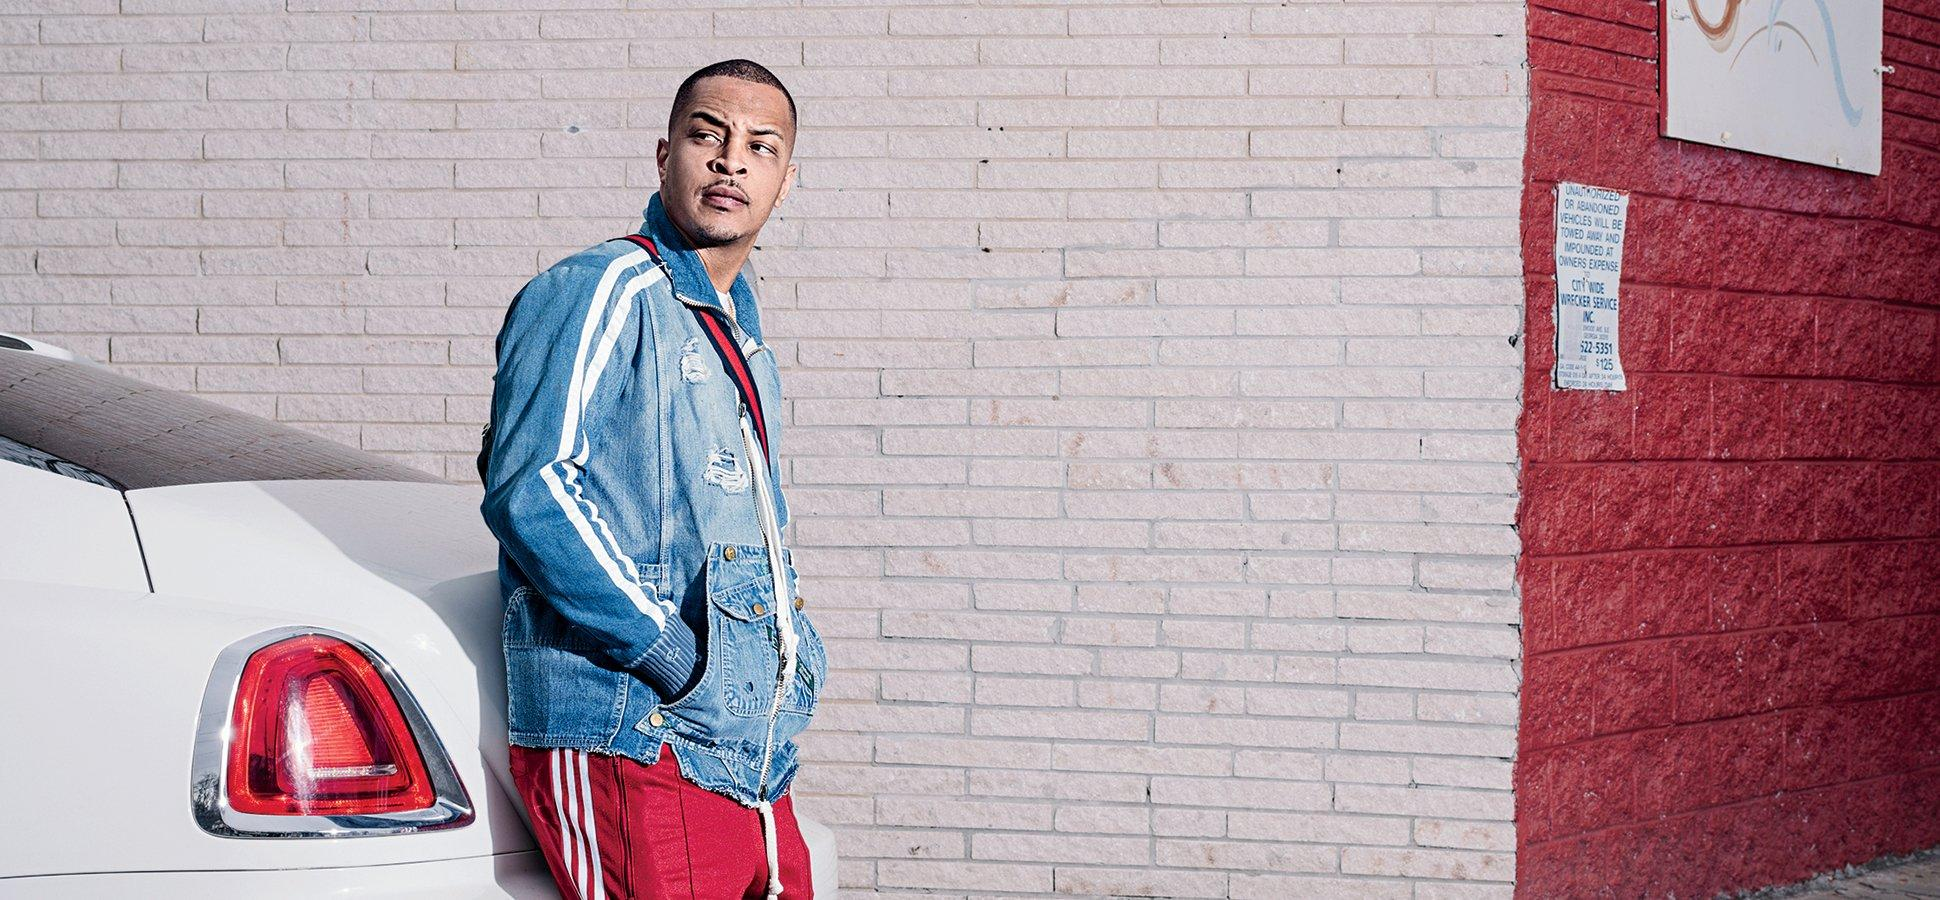 T.I. Shared Photos From The Legendary Apollo Night And Fans Praise His Elegant Look